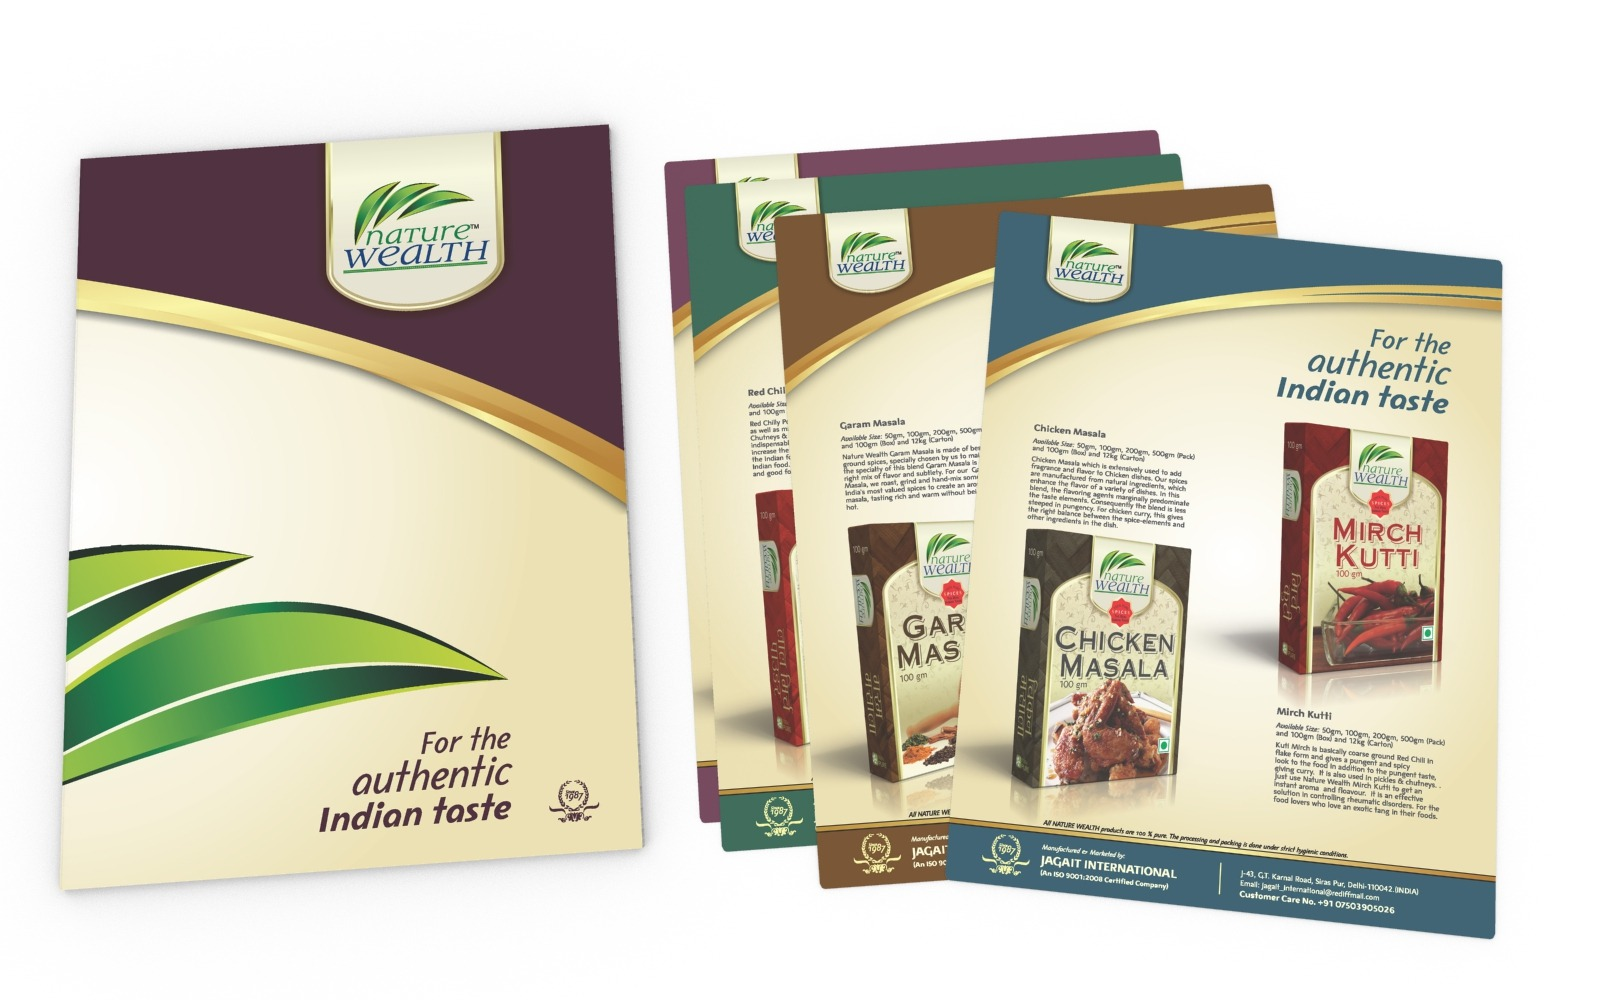 Brochure/ Catalog/ Company profile design for a FMCG/ Spices/ Food company, Nature Wealth